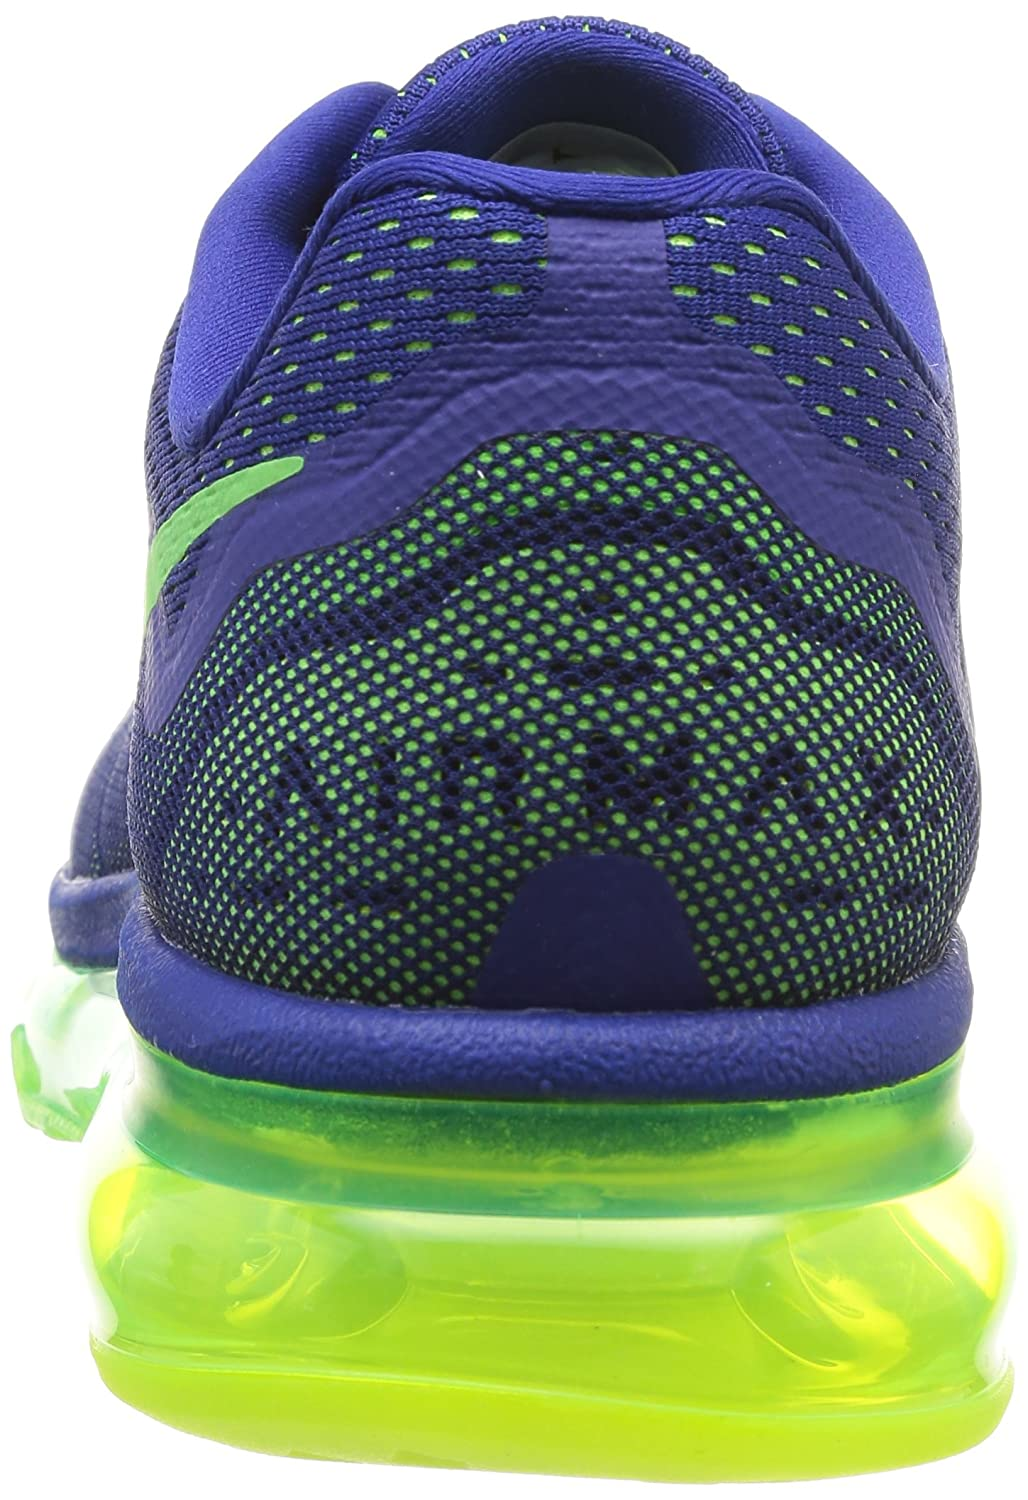 best cheap 89ad1 94575 Nike Air Max 2014 Mens Running Trainers 621077 Sneakers Shoes deep royal  blue electric green volt black 402 uk 6 us 7 eu 40  Buy Online at Low  Prices in ...